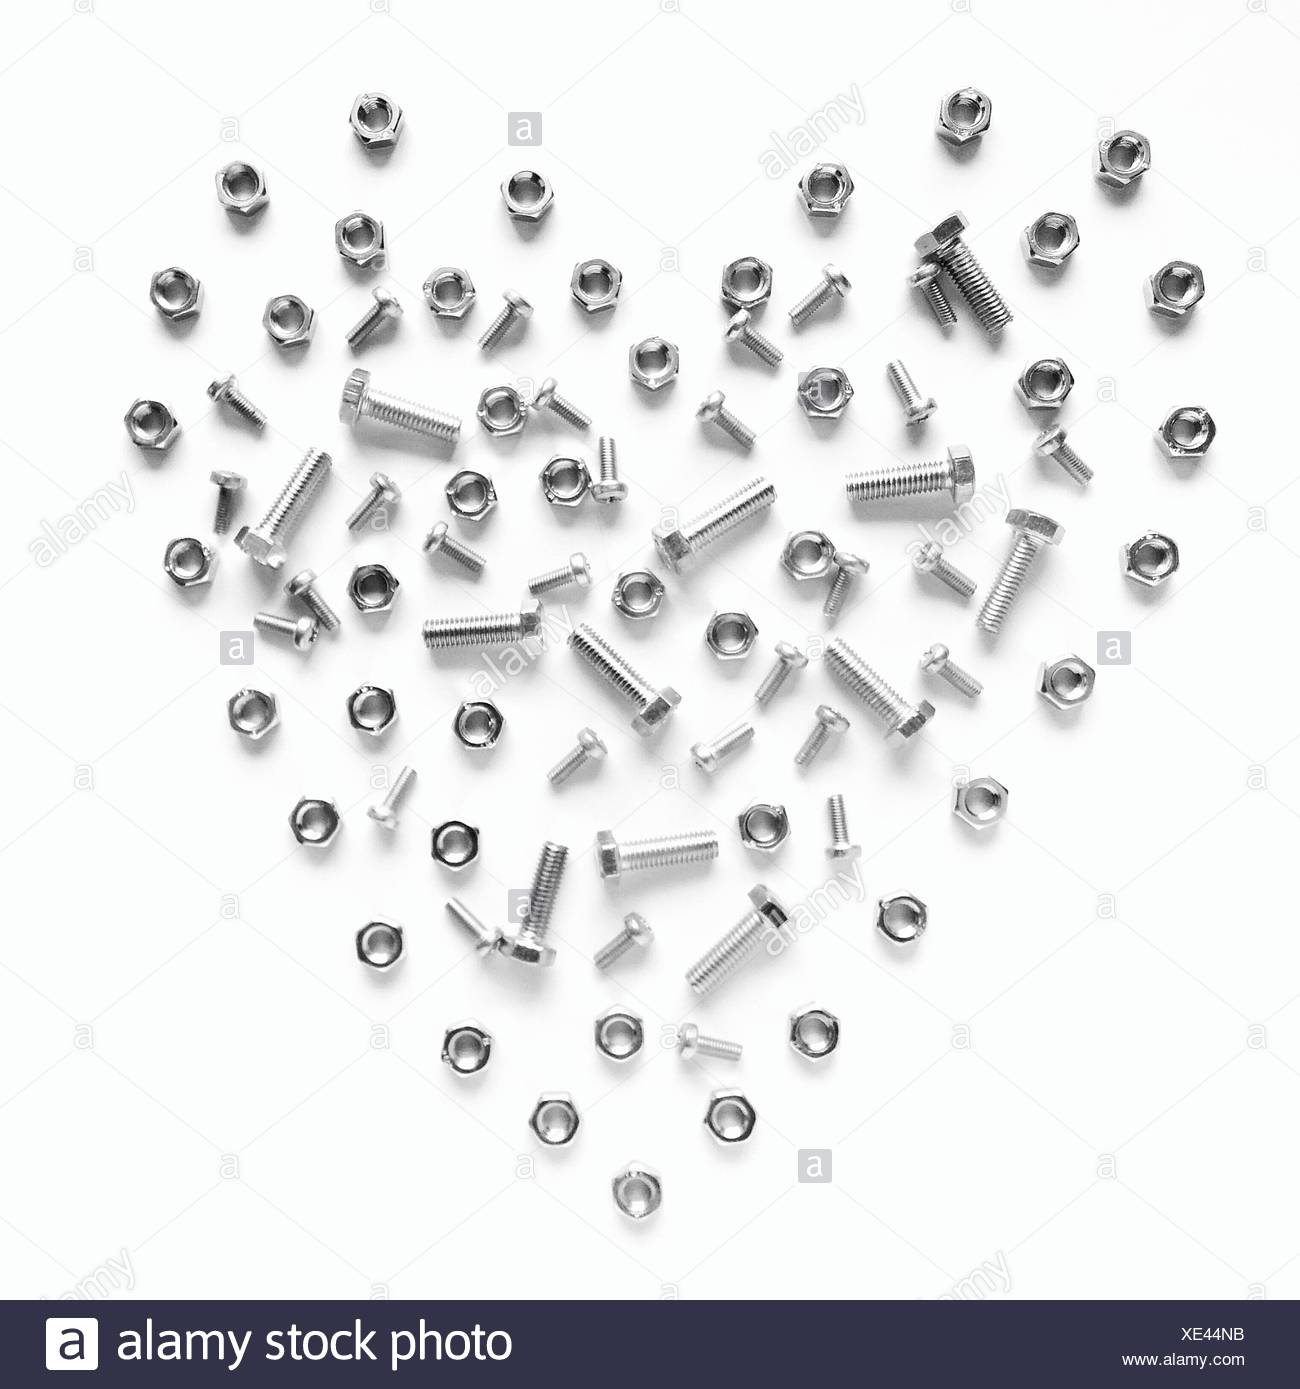 Heart Shape Made From Nuts And Bolts On White Background Stock Photo